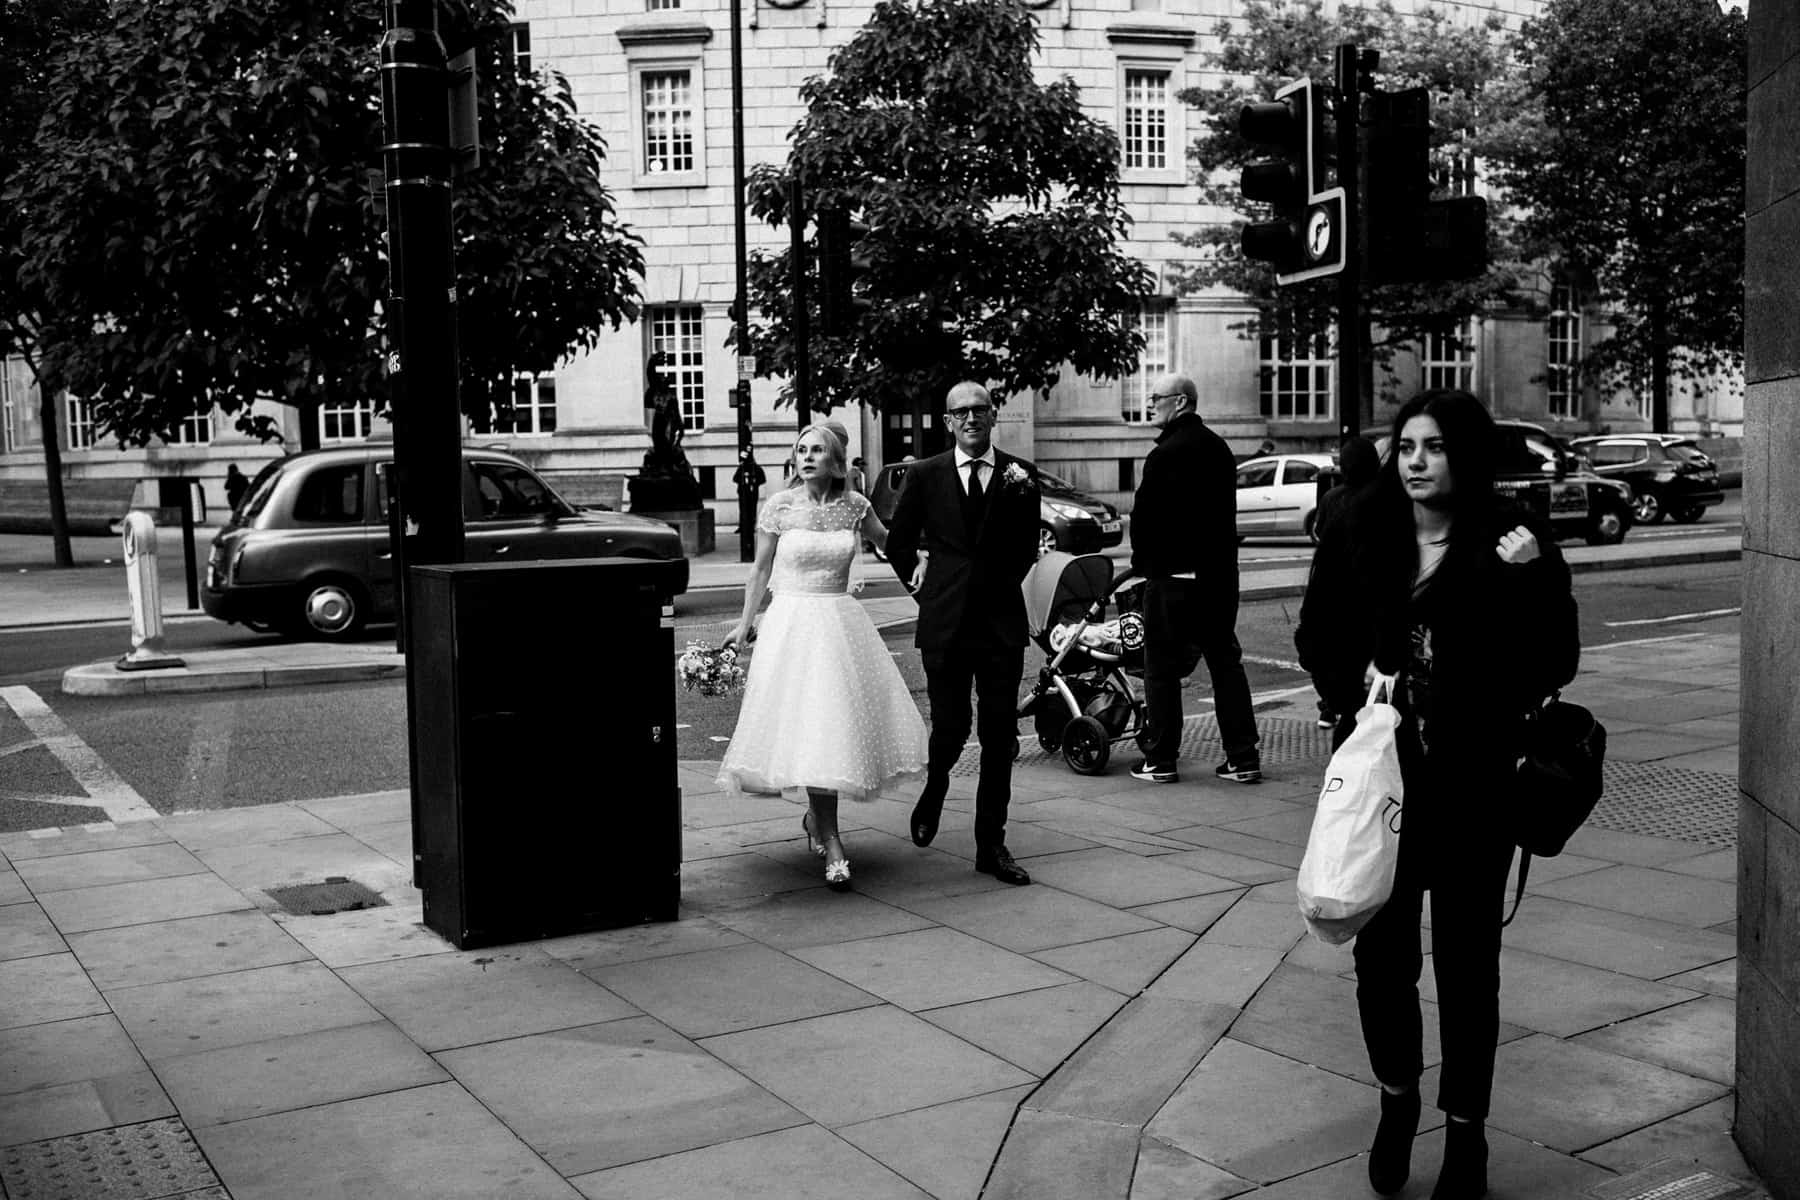 b;ack and white image of bride and groom walking through manchester